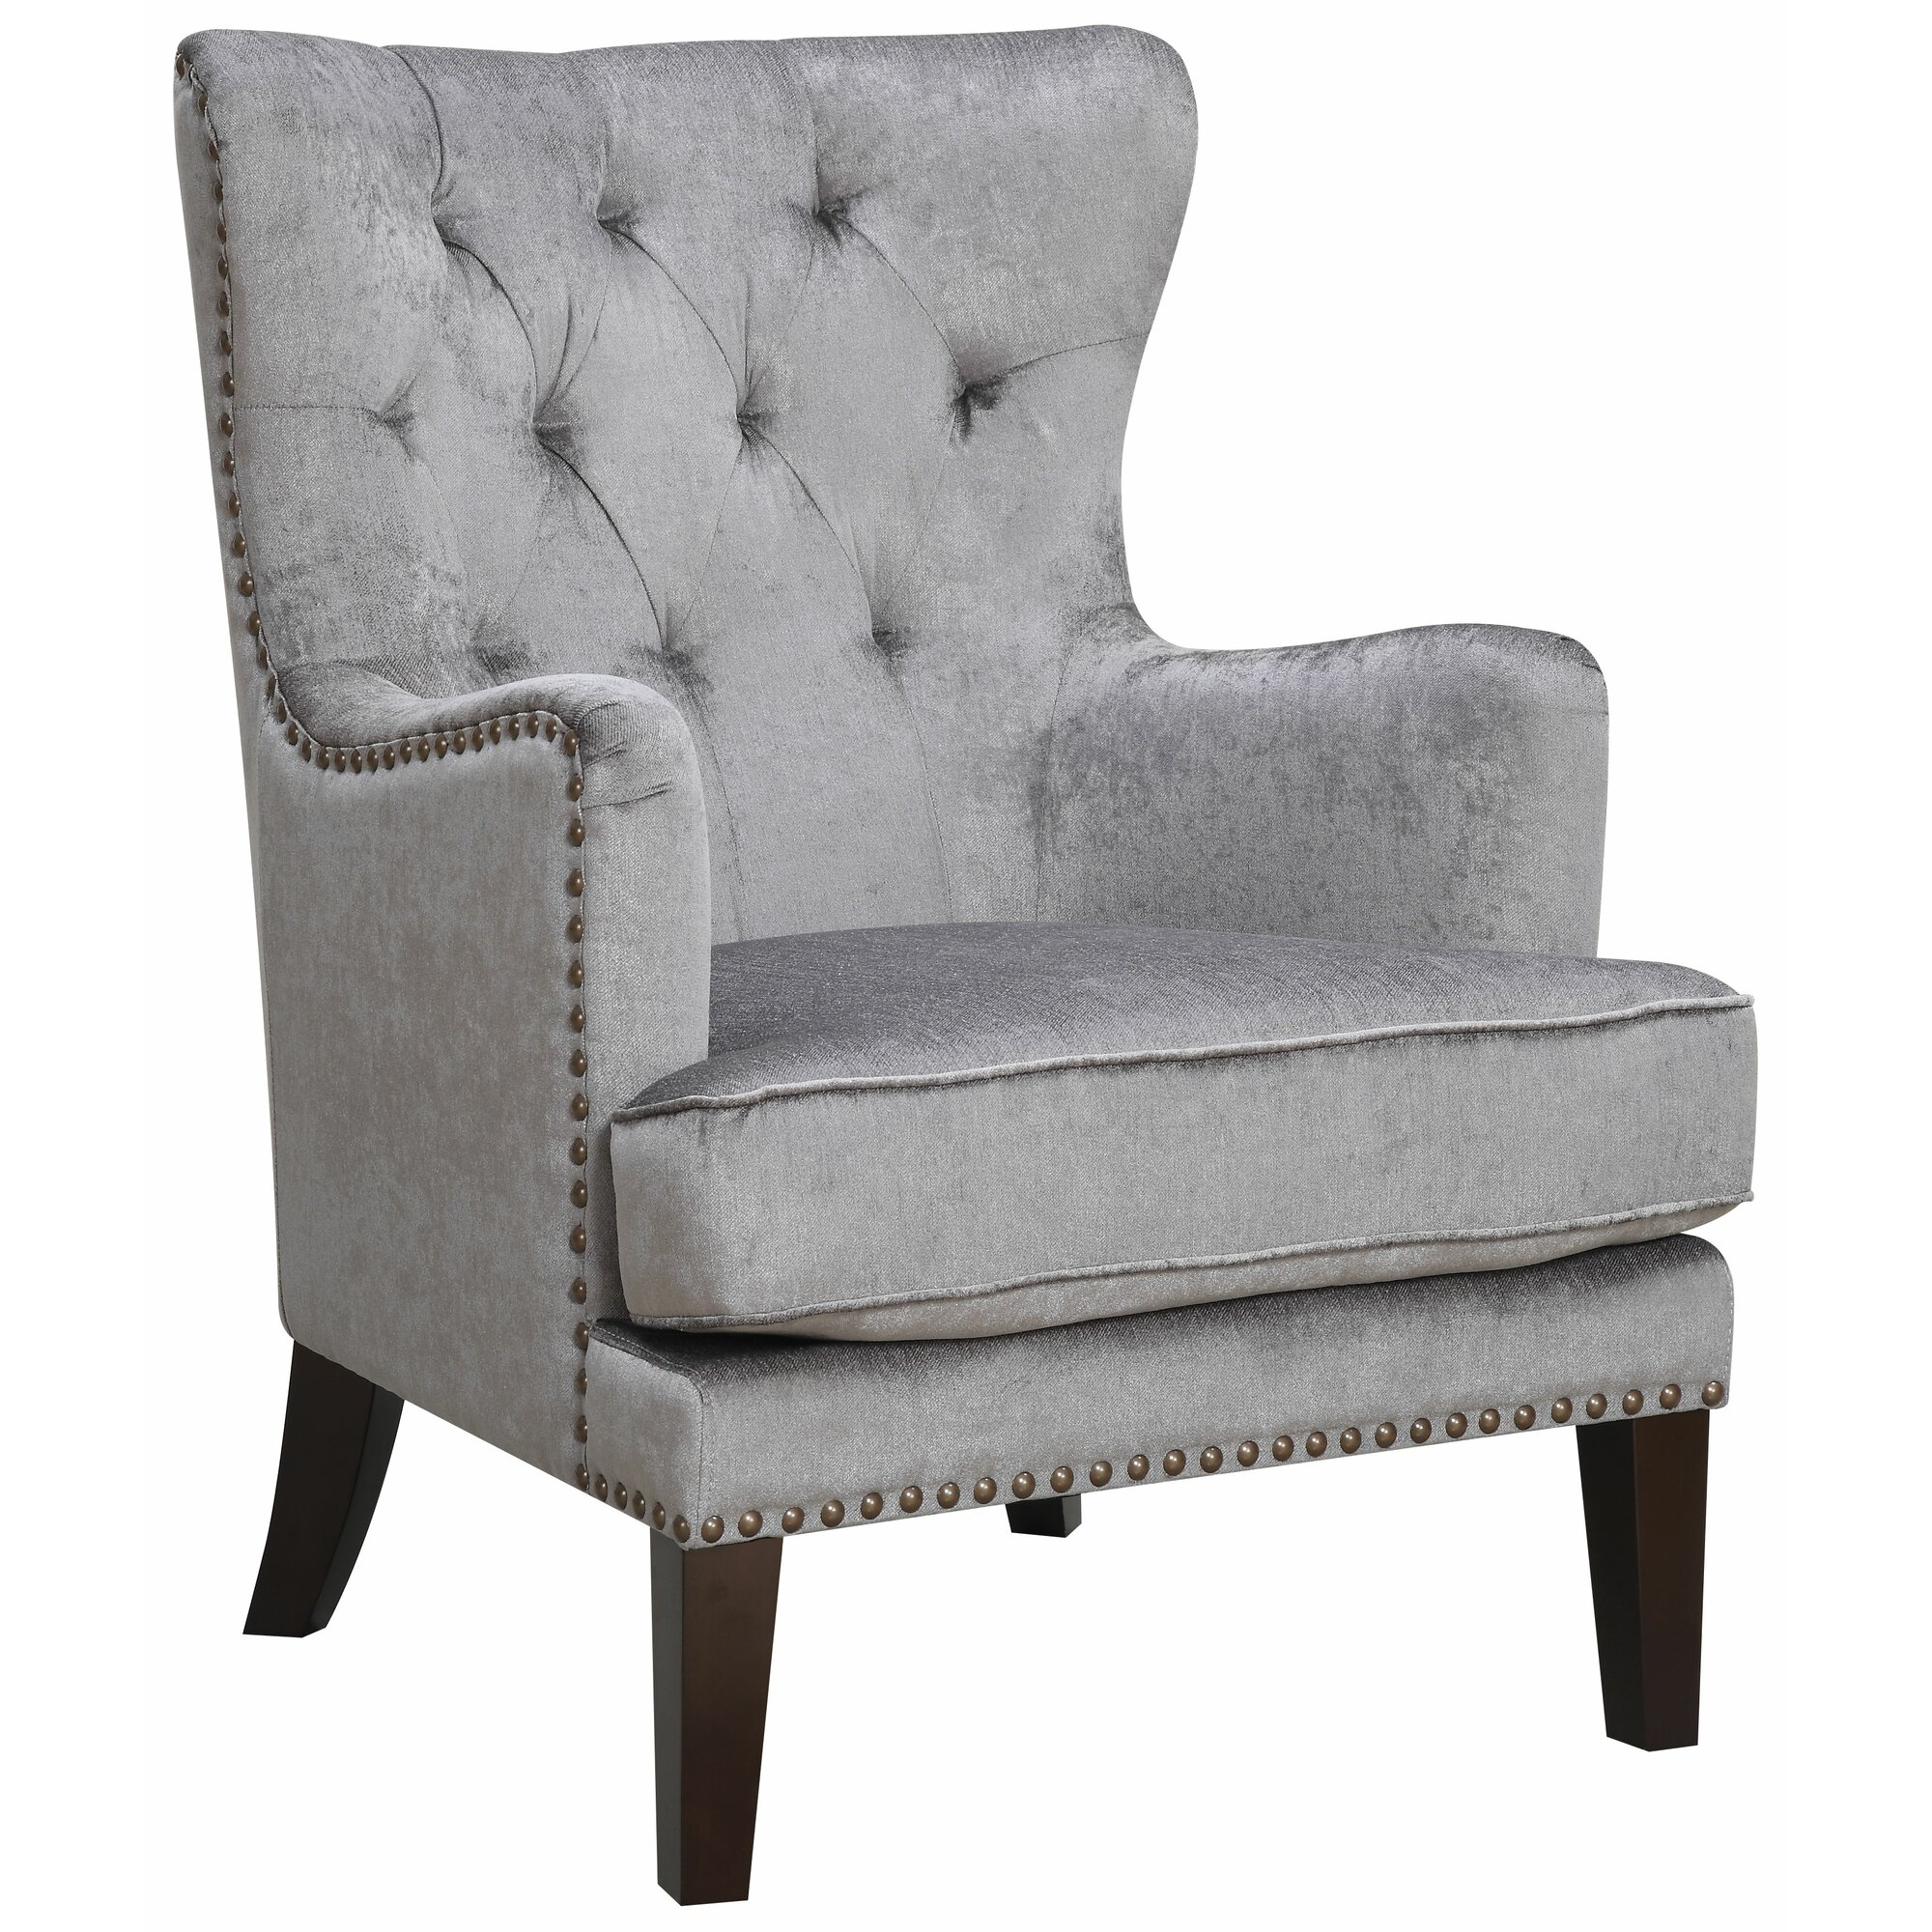 ac pacific isabella wing back chair reviews. Black Bedroom Furniture Sets. Home Design Ideas